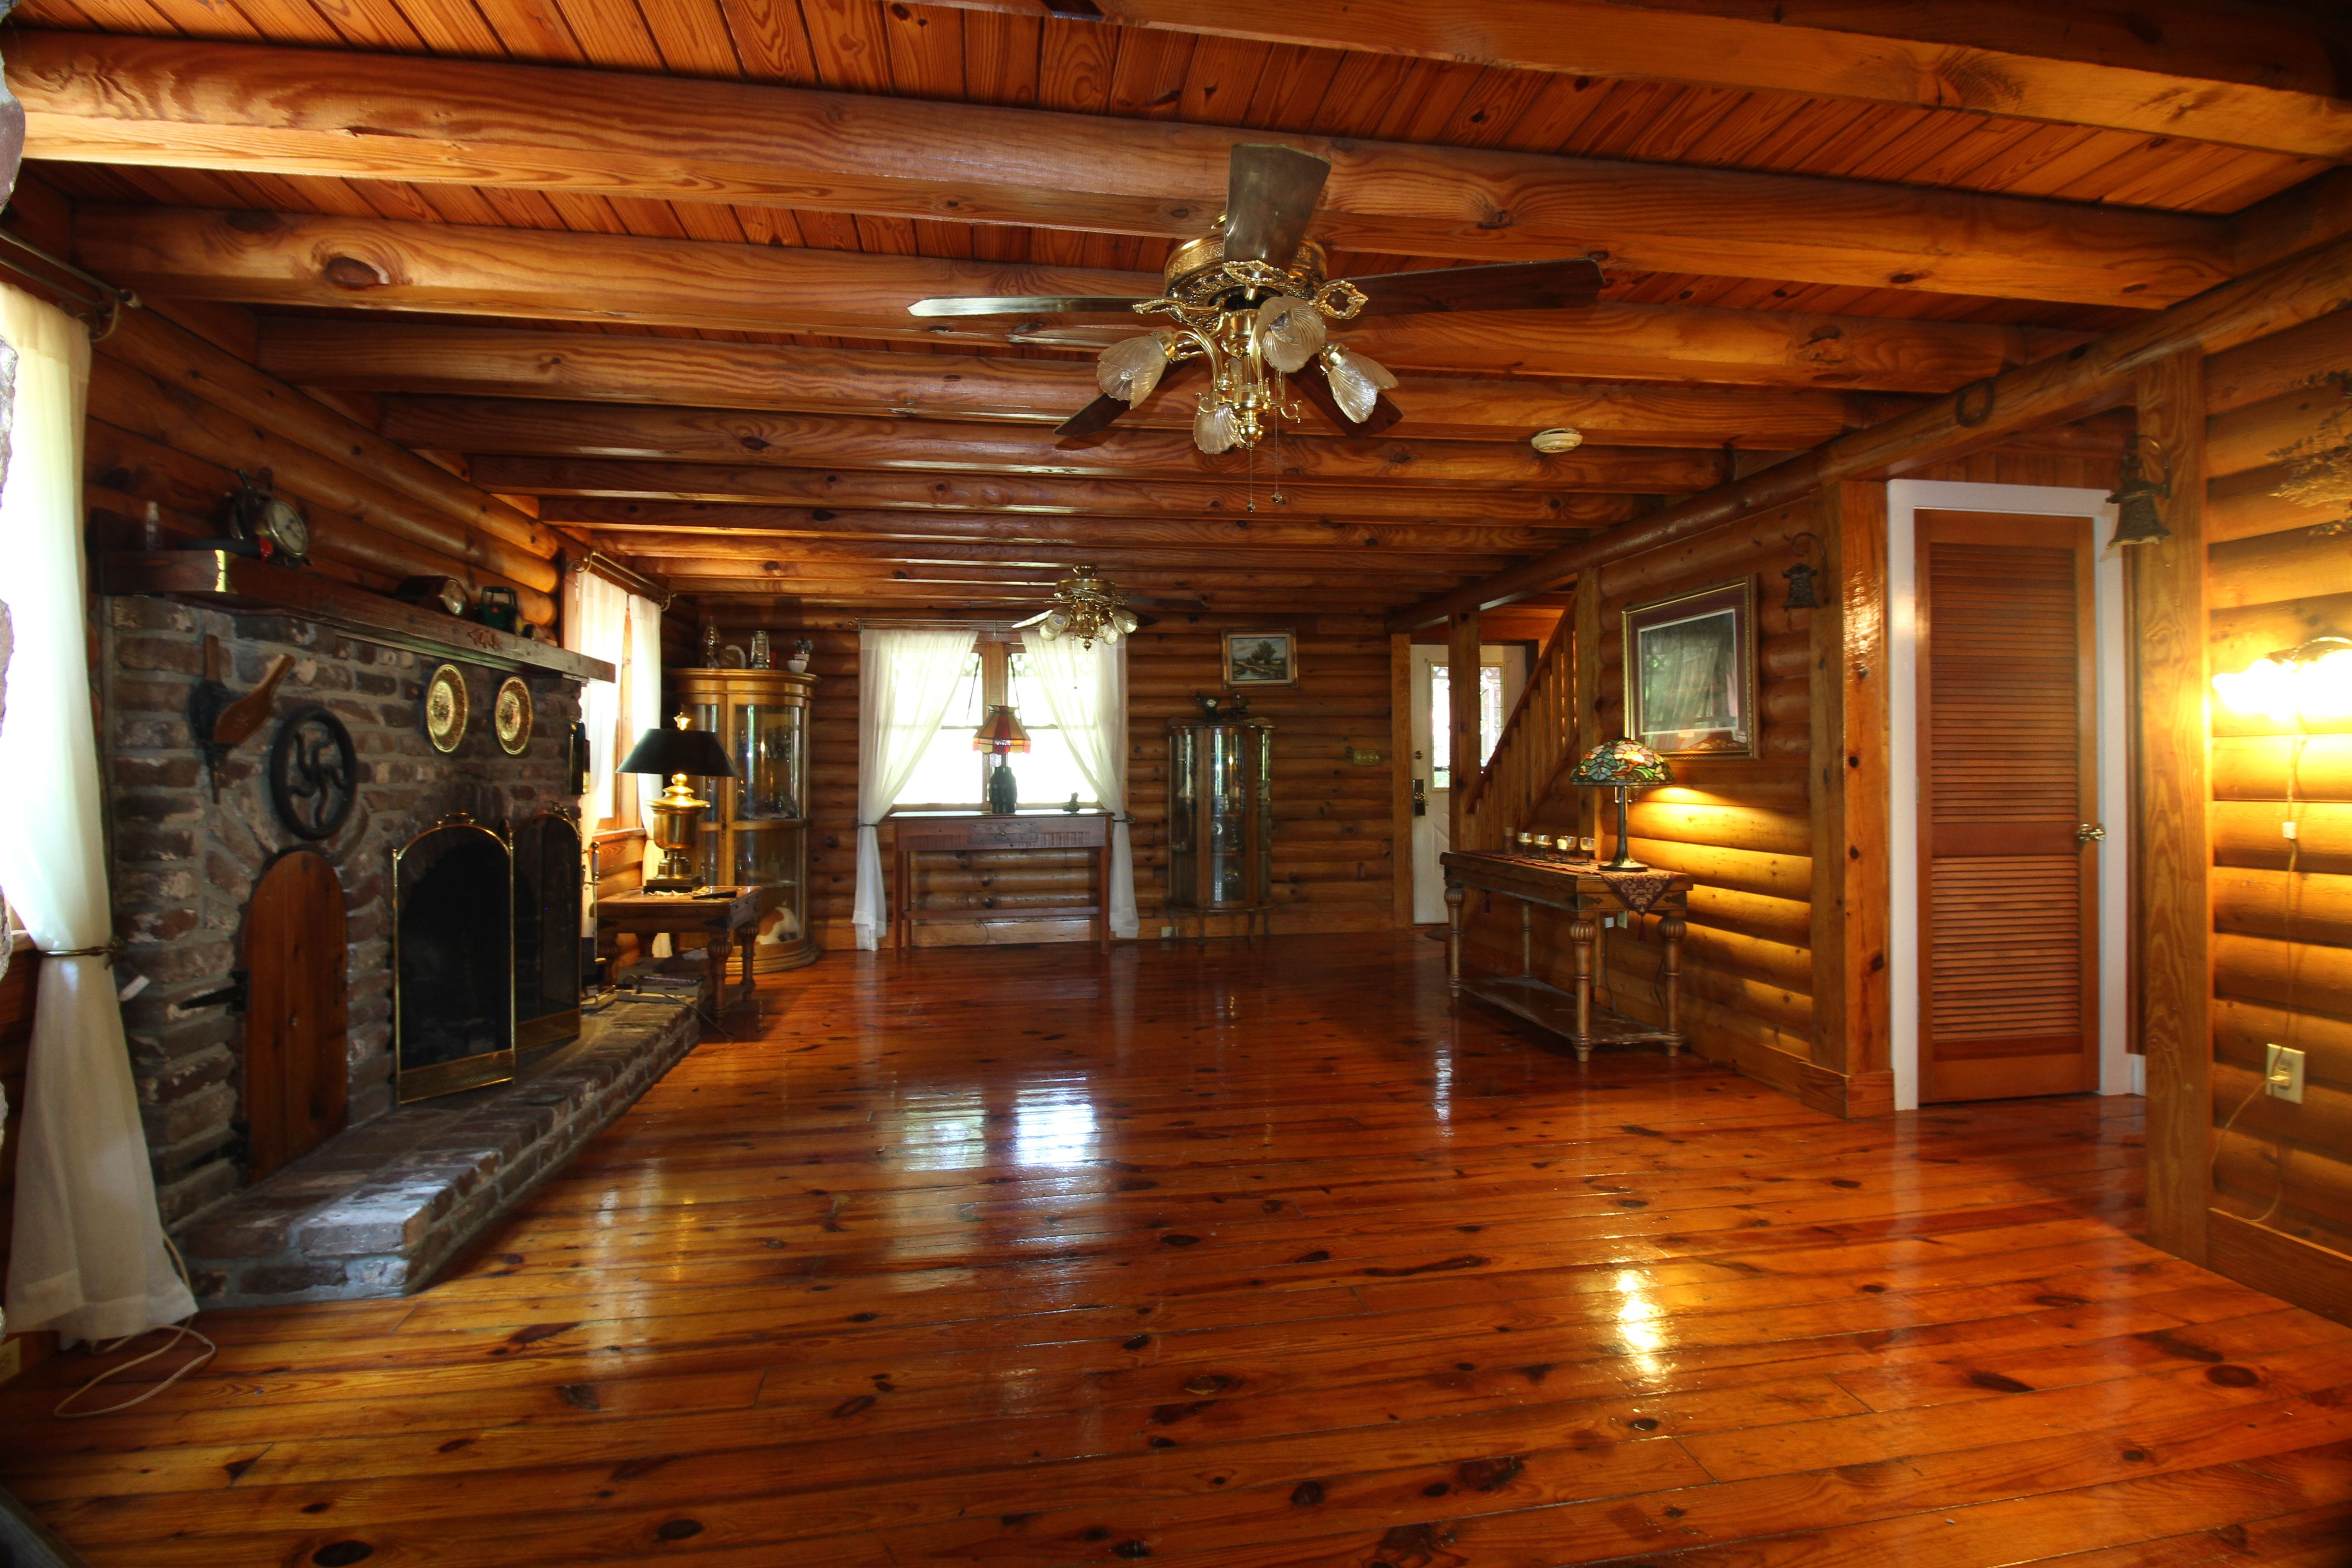 Black River Falls Cabins For Sale - Black River Cabin for Sale - YouTube / Cabins and land for sale in red river gorge, kentucky.